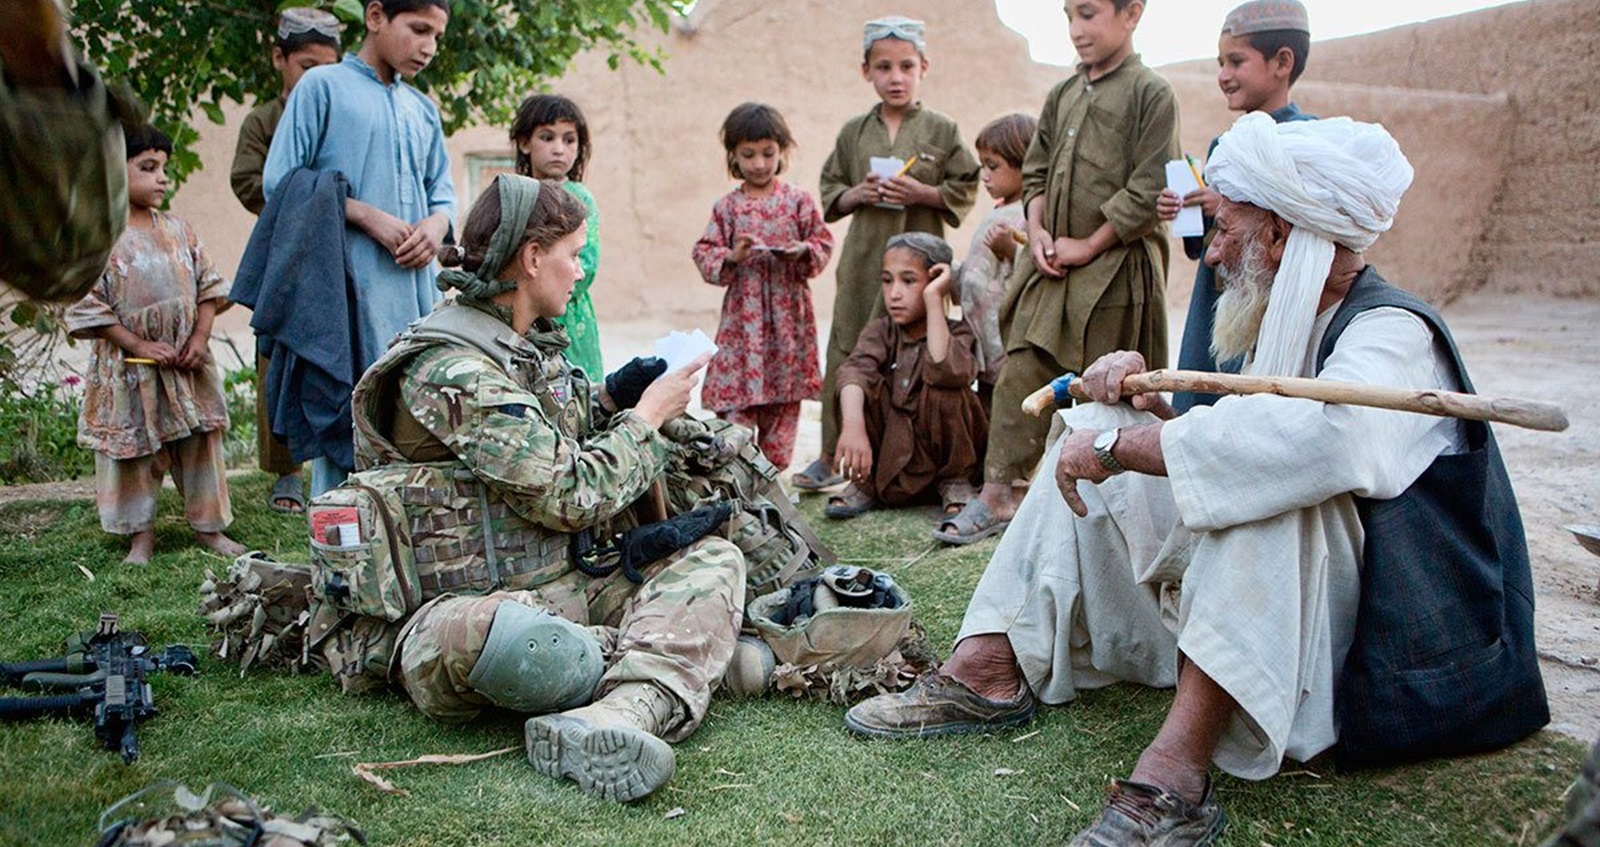 Anna Crossley in Afghanistan talking to Afghani children and elderly.